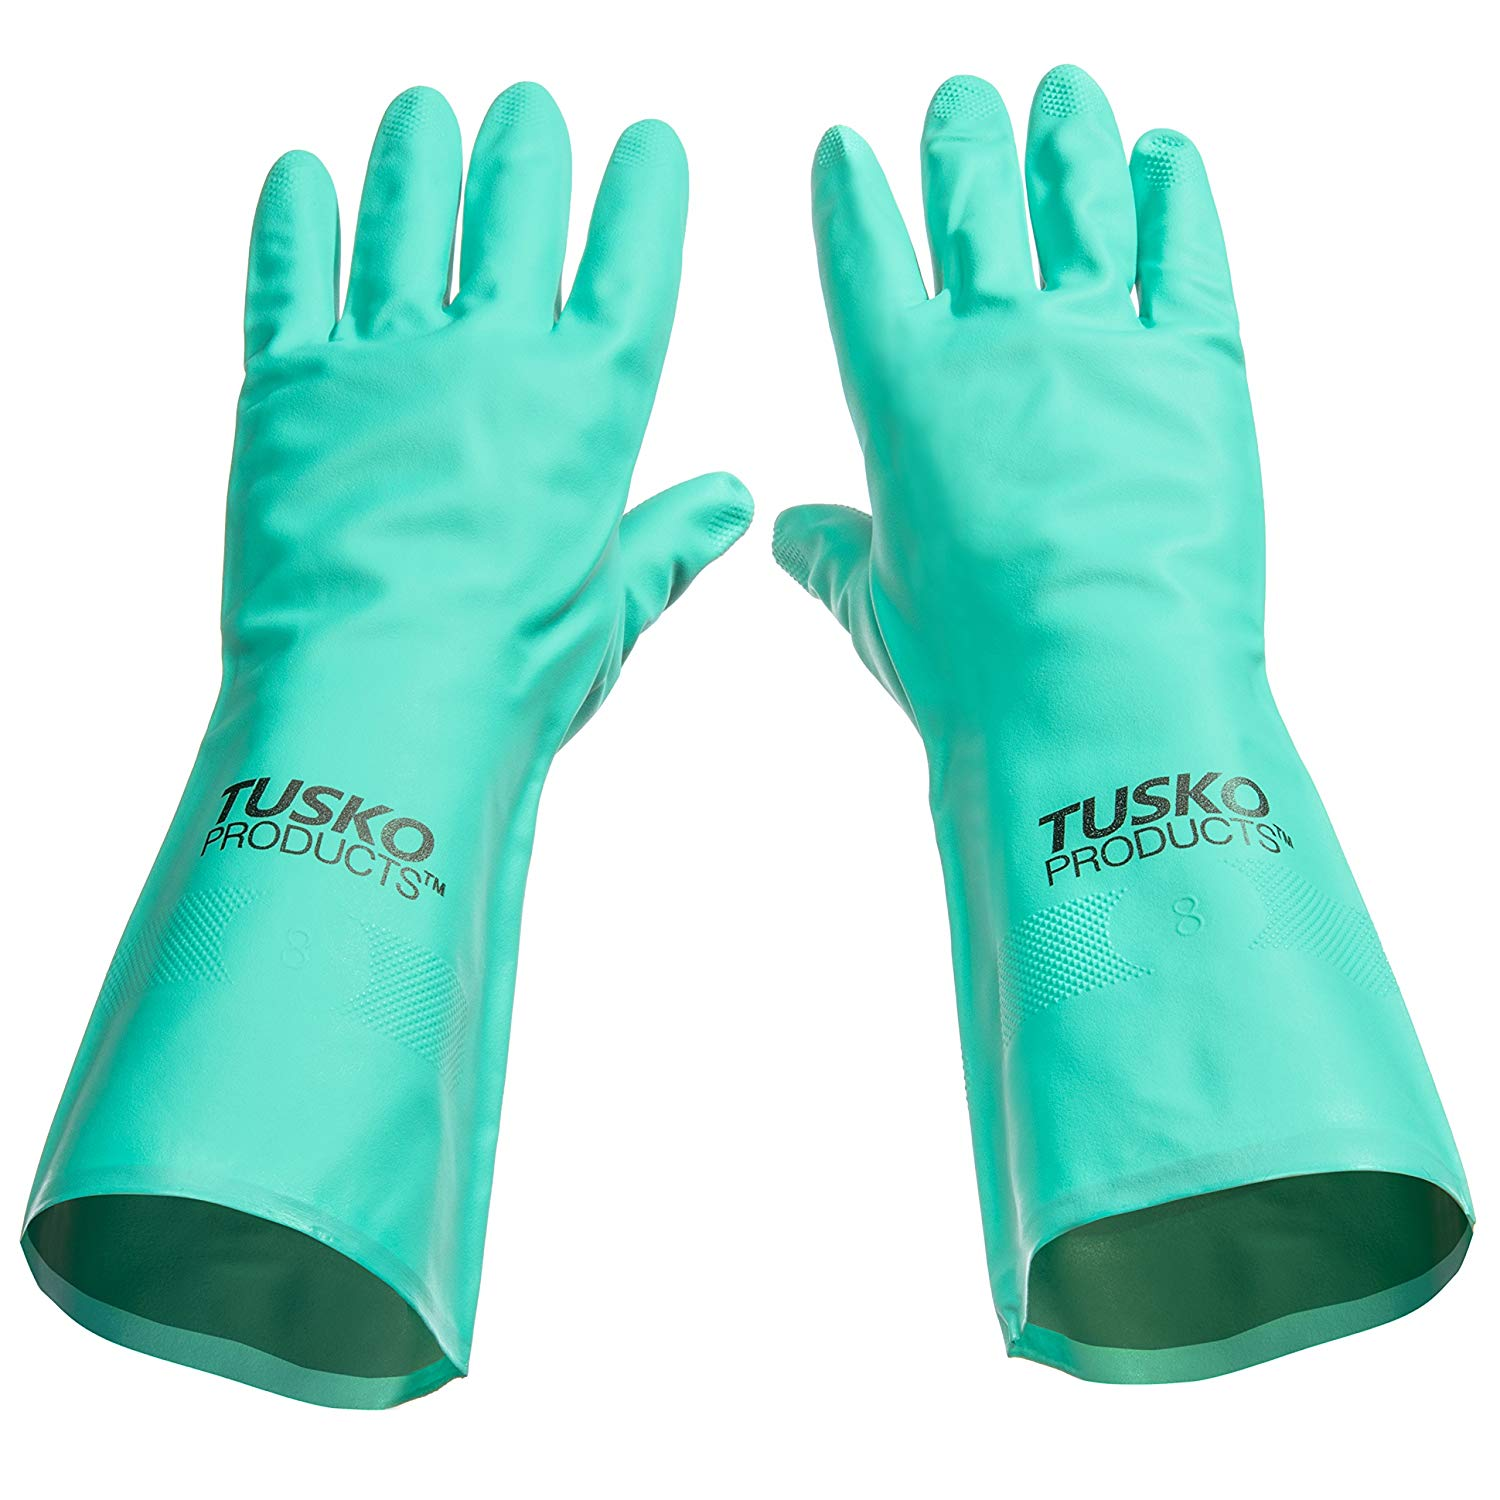 Tusko Nitrile Dishwashing Gloves